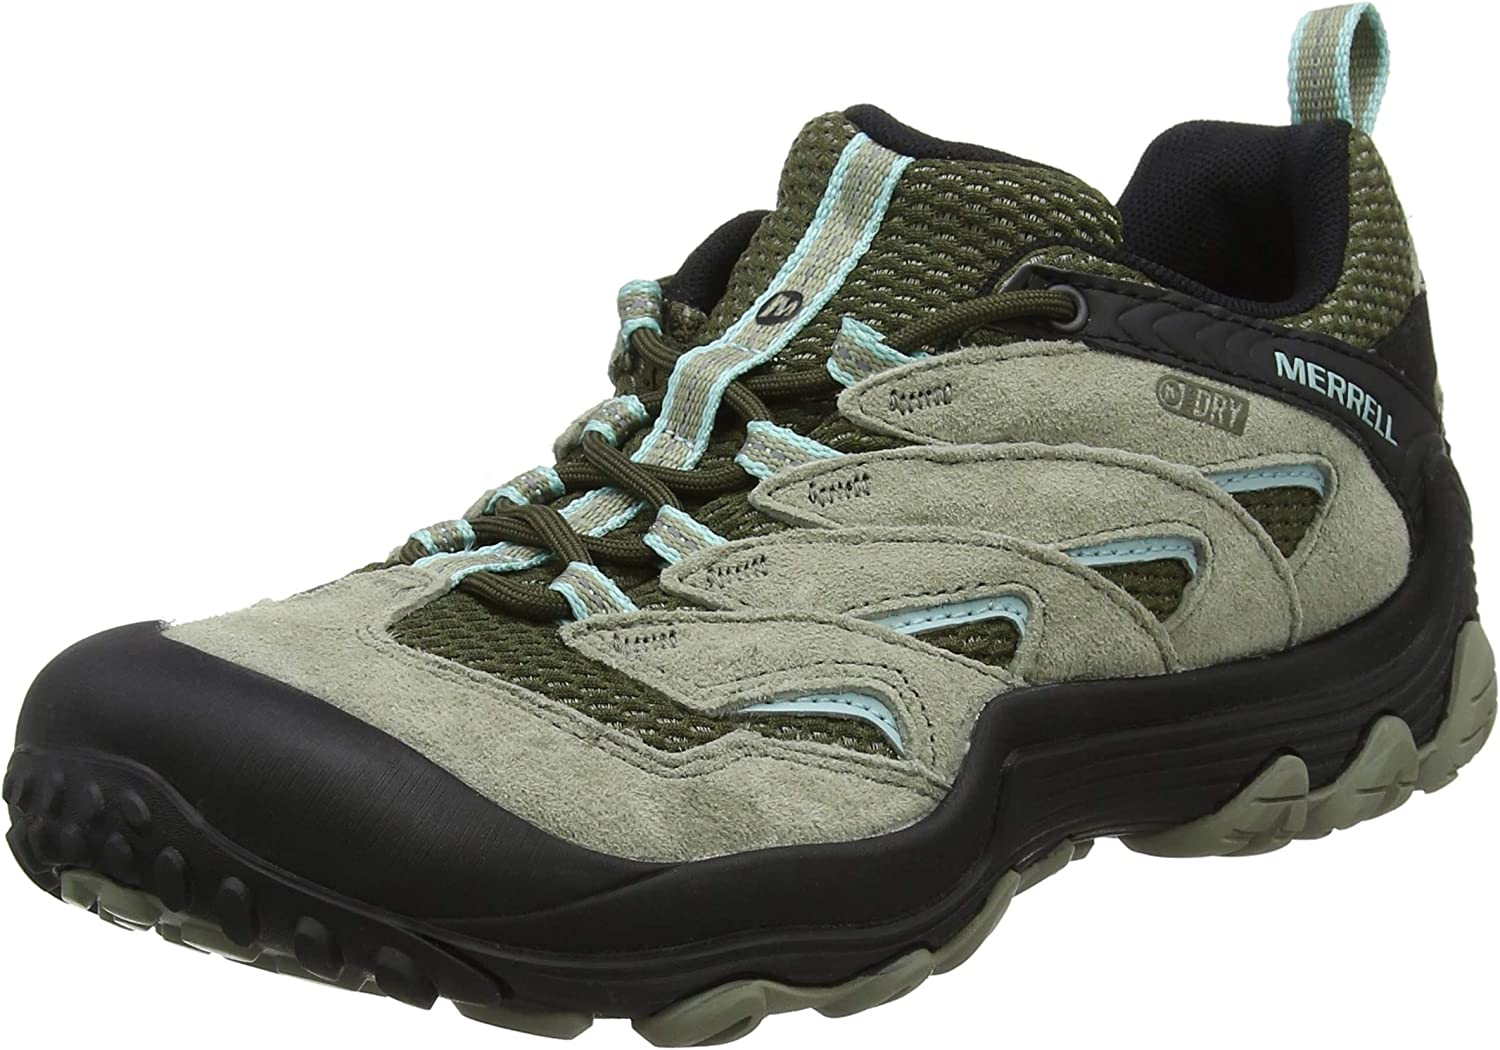 Merrell Womens Cham 7 Limit WTPF Hiking shoes